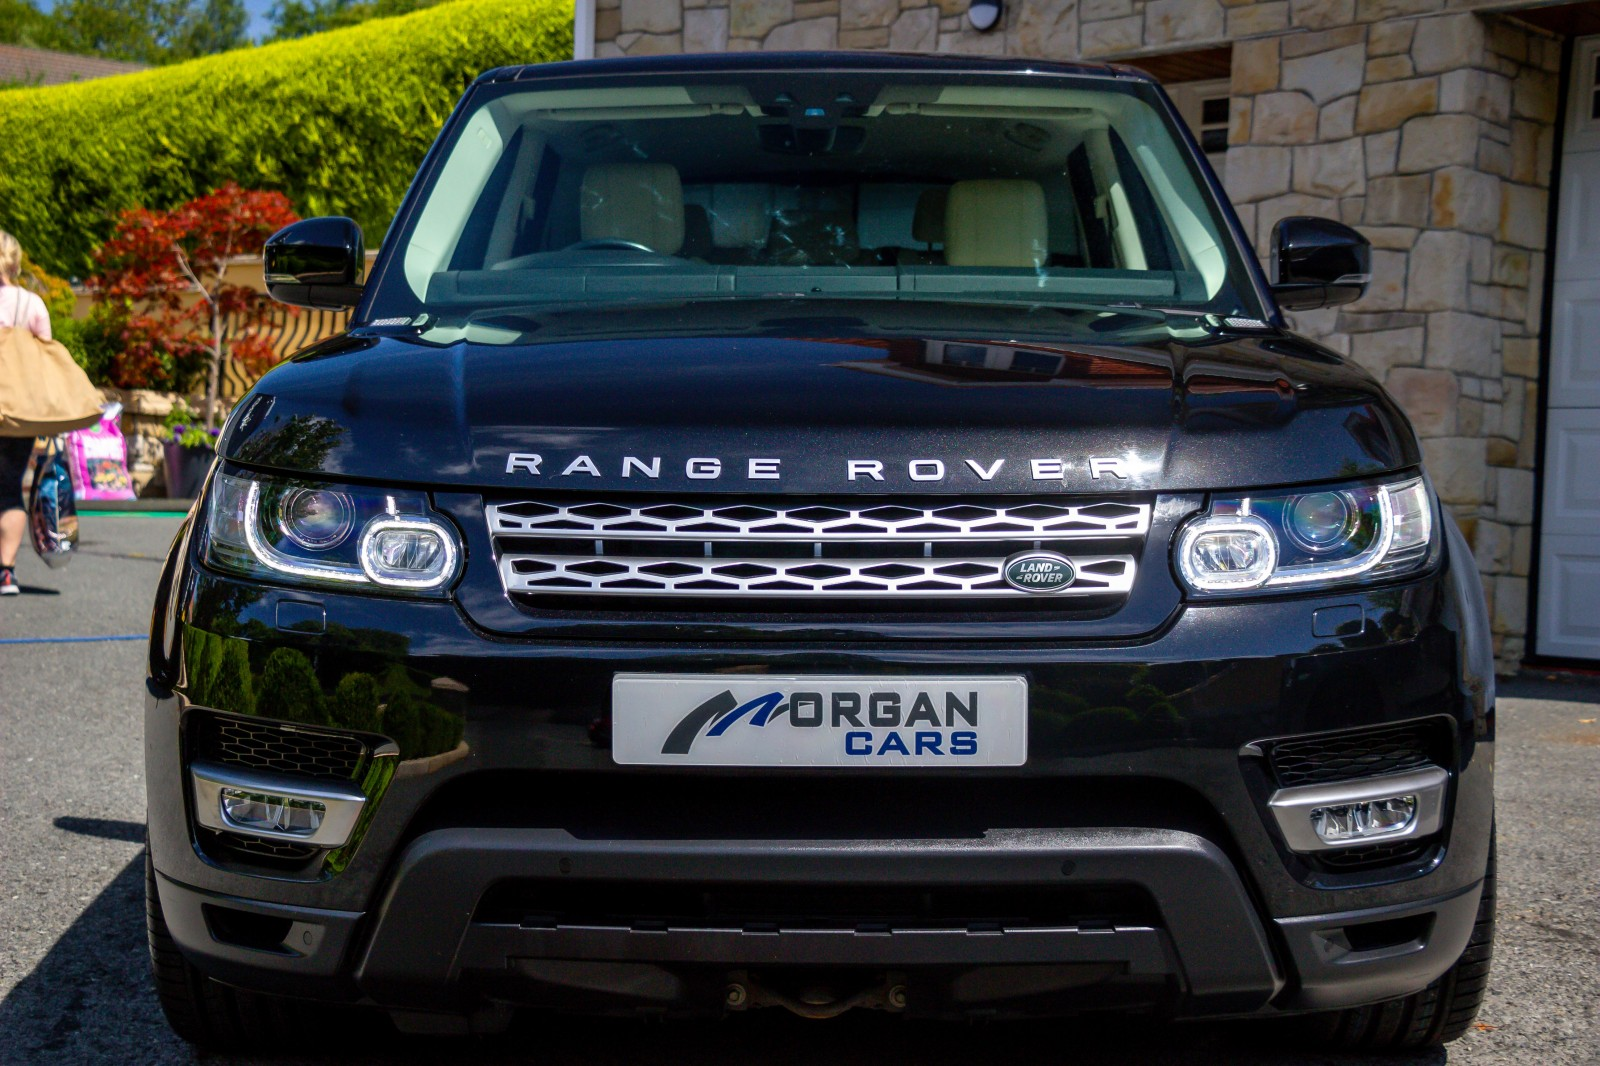 2017 Land Rover Range Rover Sport 3.0 SDV6 HSE Diesel Automatic – Morgan Cars 9 Mound Road, Warrenpoint, Newry BT34 3LW, UK full